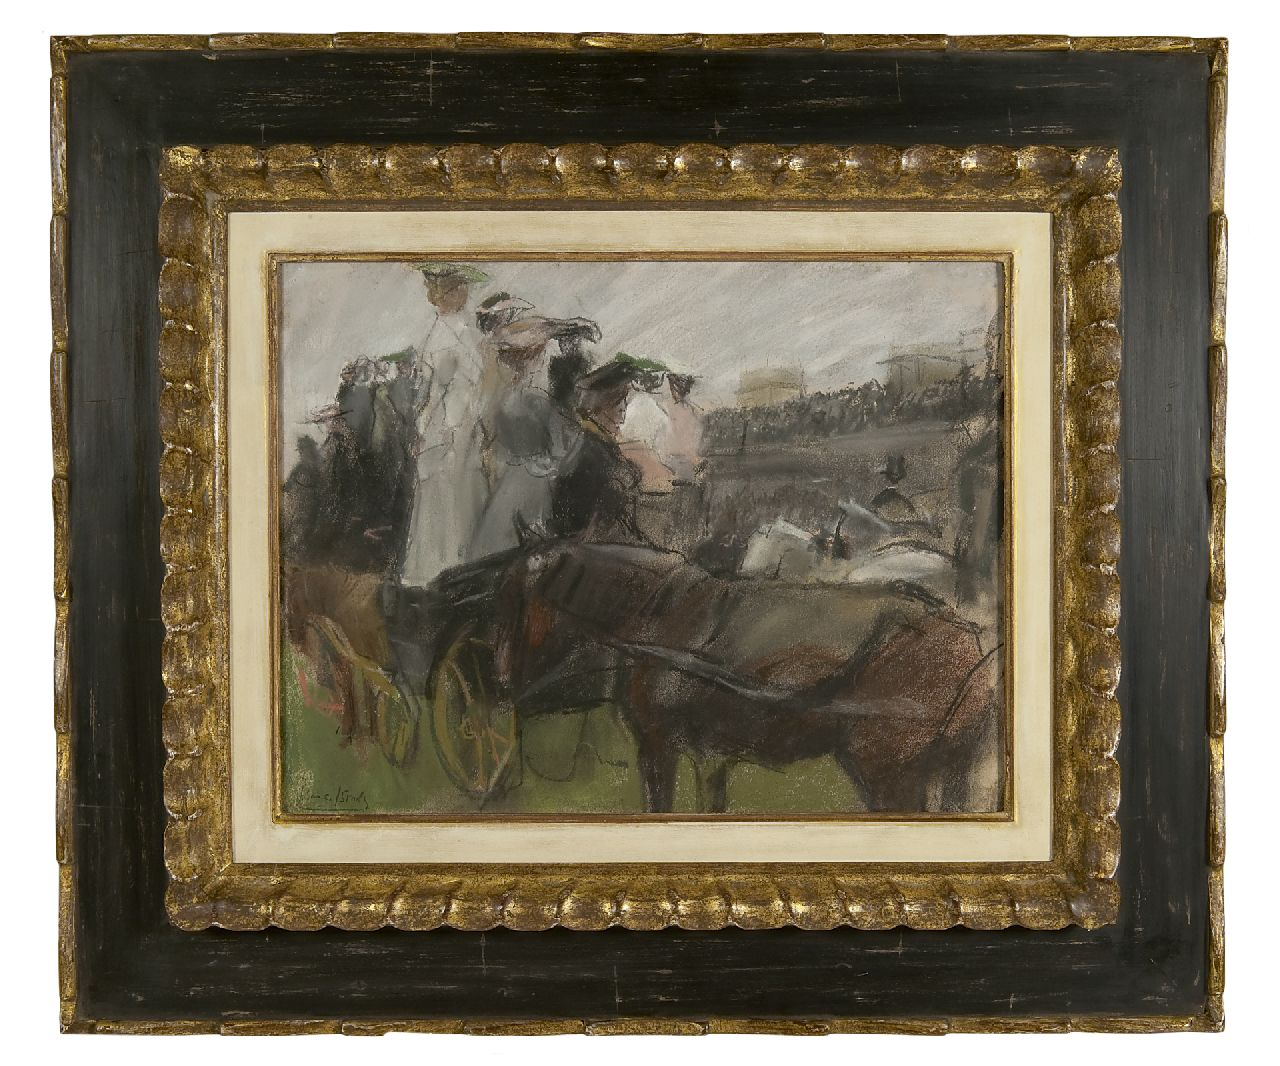 Israels I.L.  | 'Isaac' Lazarus Israels, At the Longchamp races, Paris, pastel and pencil on paper 30.5 x 40.0 cm, signed l.l. and executed ca. 1900